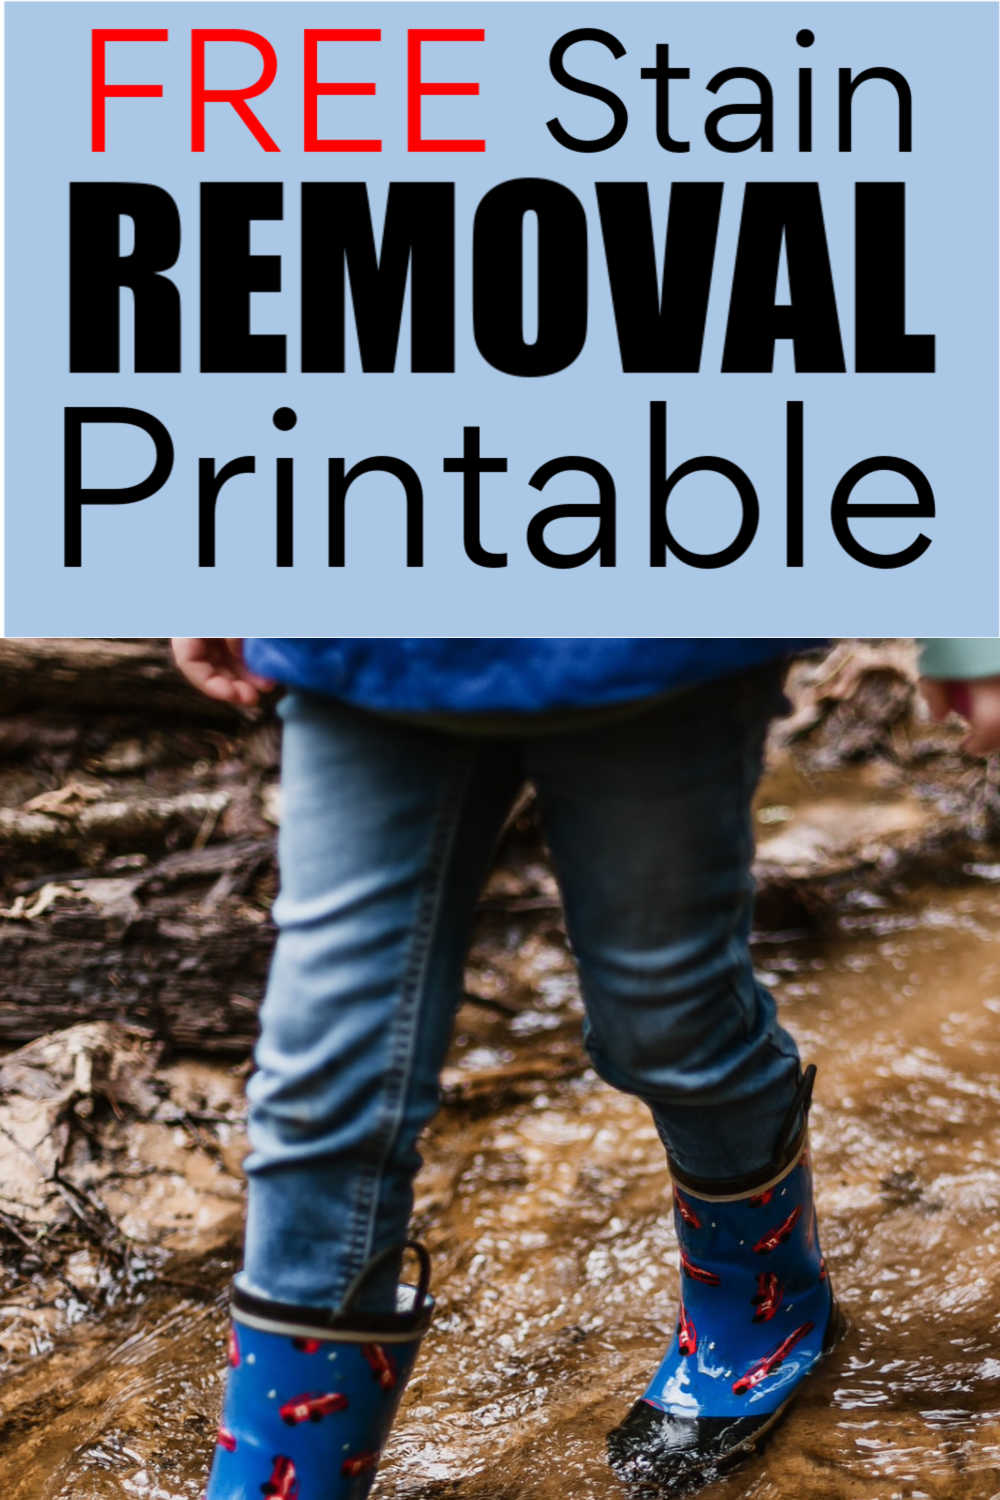 3 Free Stain Removal Printable Cheat Sheets and Tips/Tricks